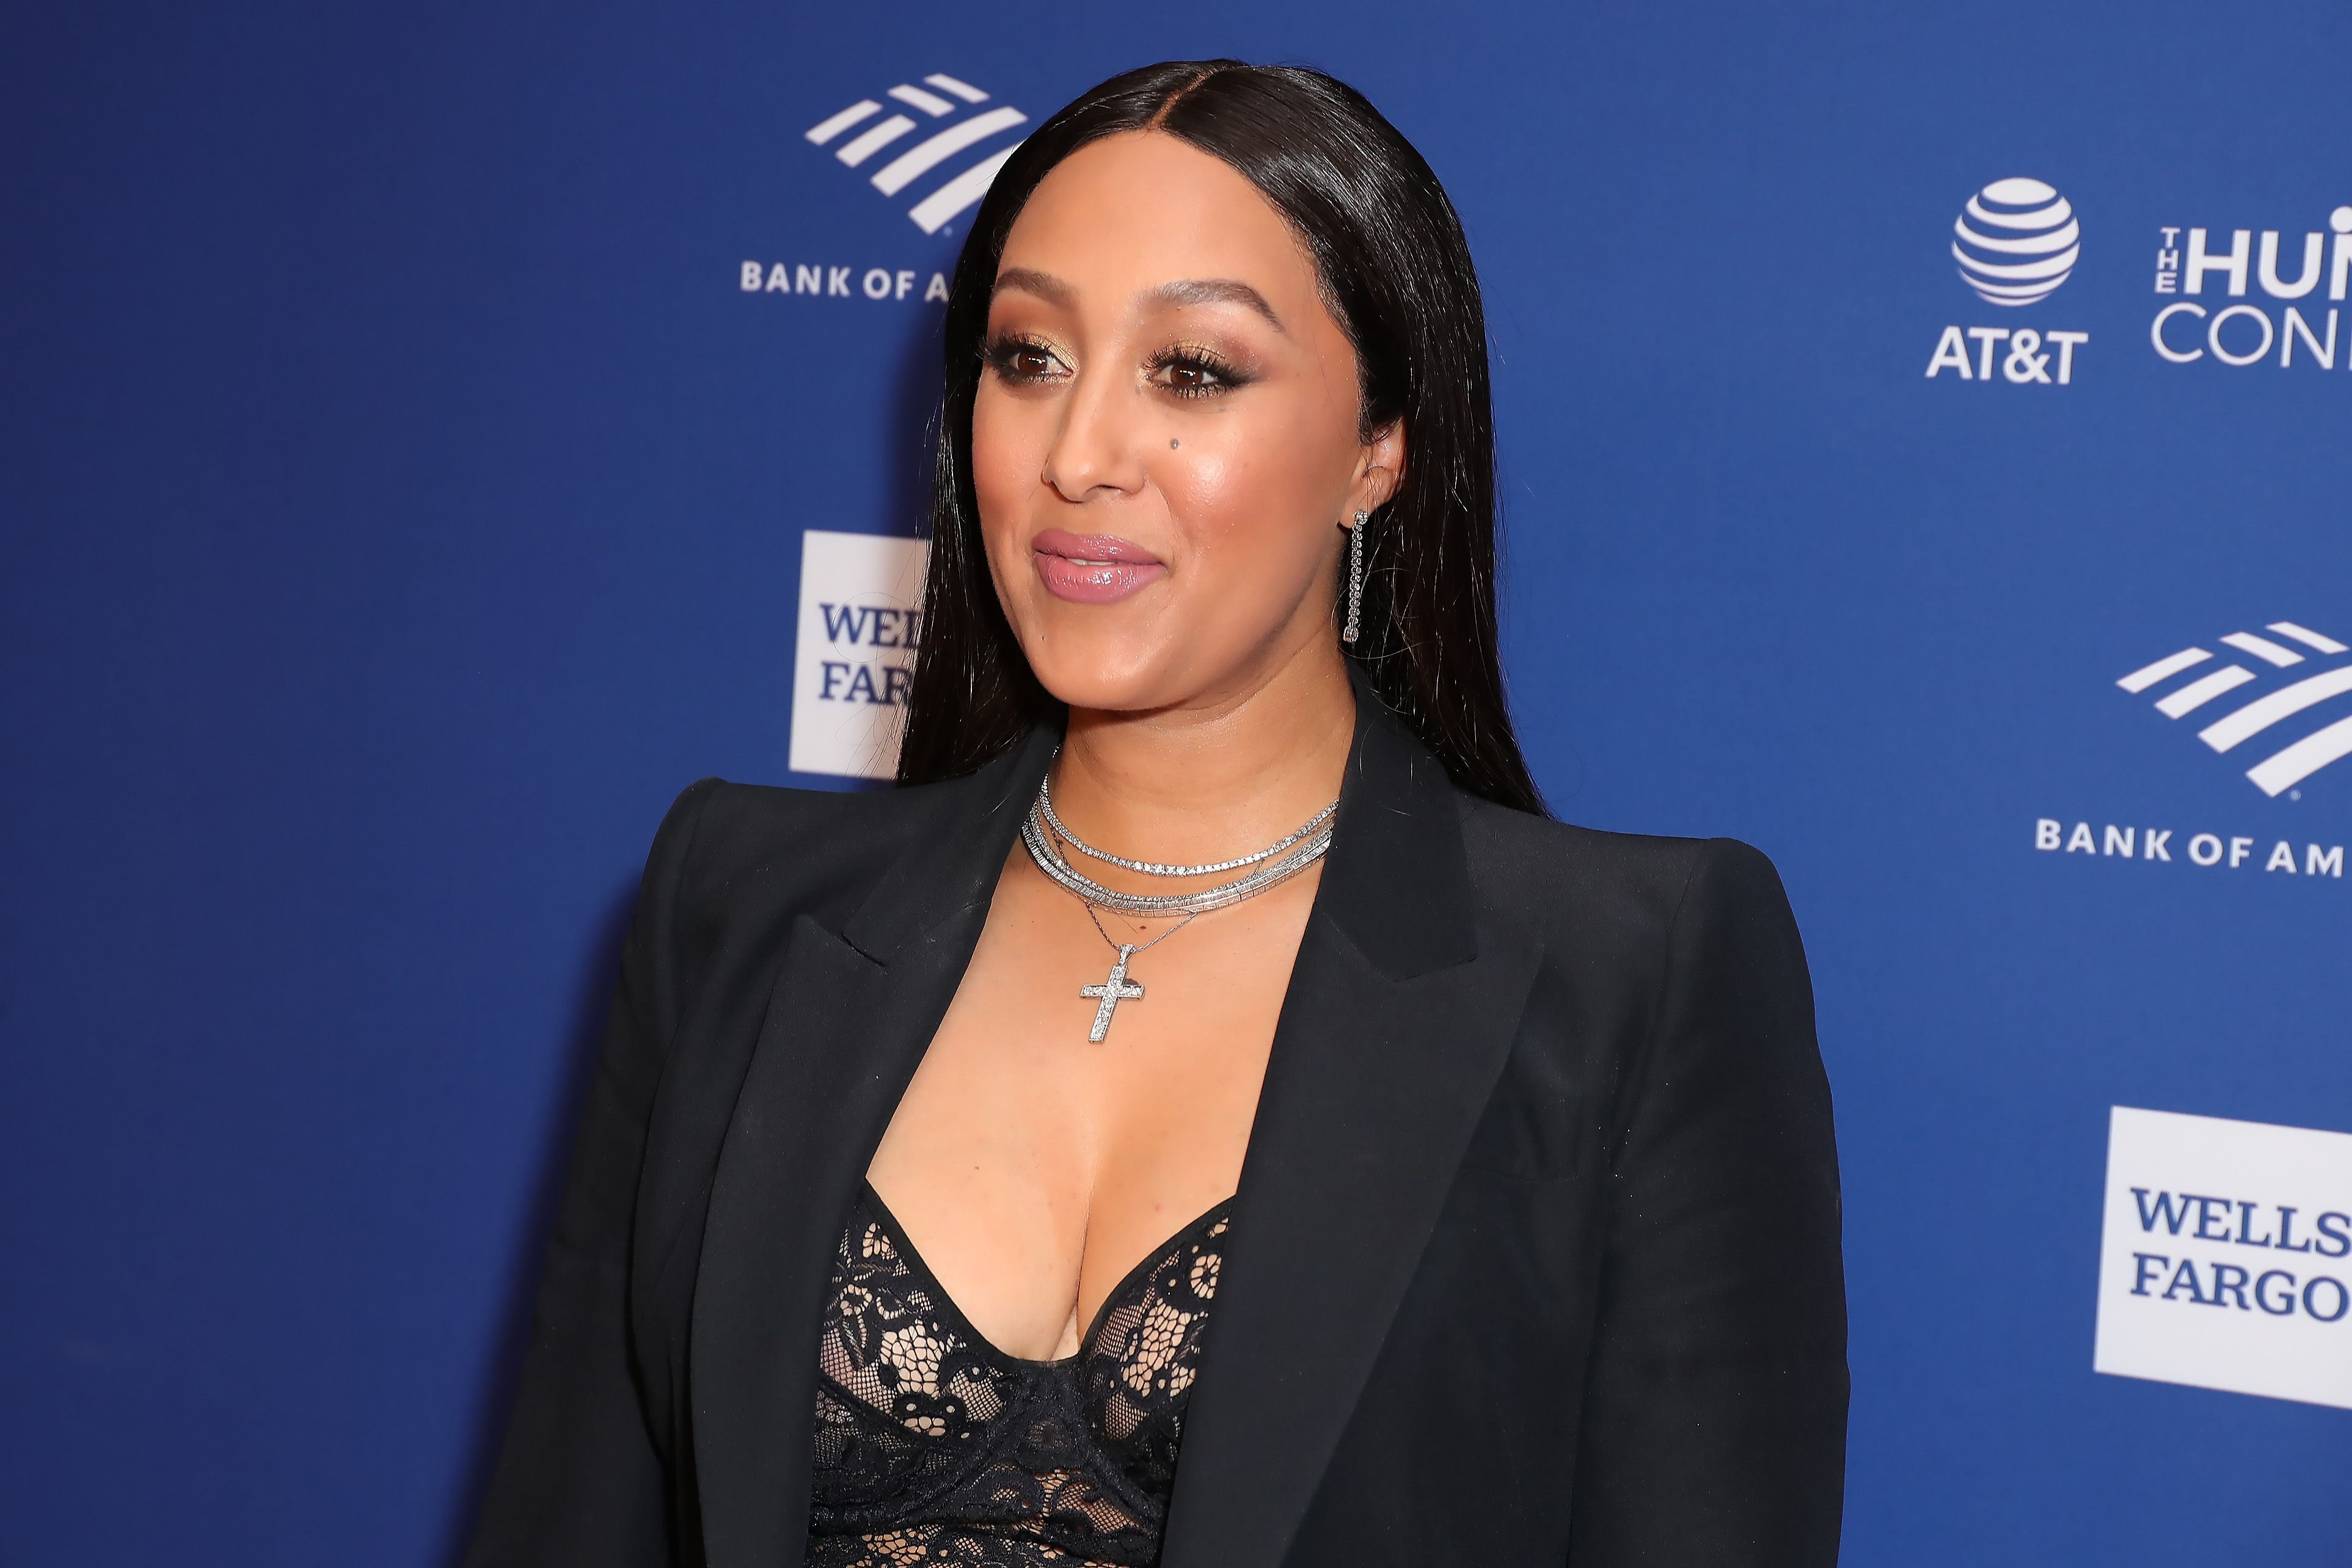 Tamera Mowry-Housley at the 51st NAACP Image Awards in February 2020 in Hollywood, California | Source; Getty Images